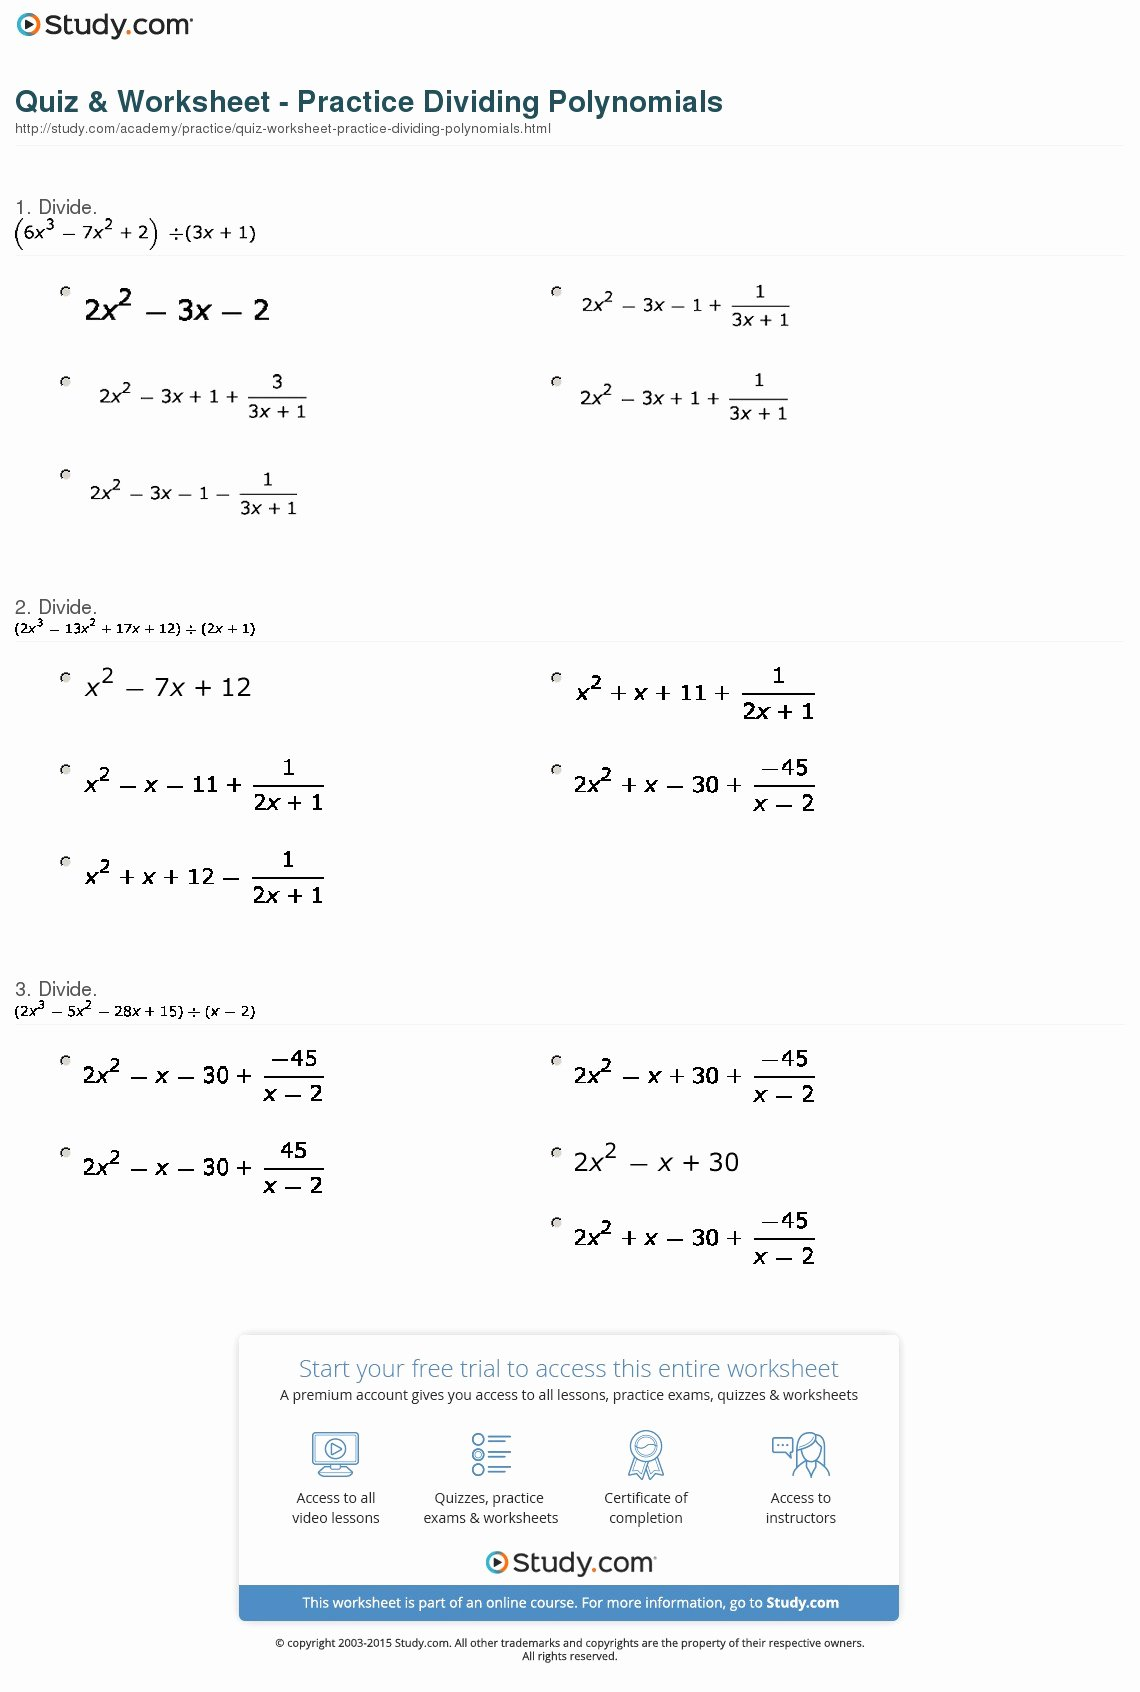 Polynomials Worksheet with Answers Best Of Quiz & Worksheet Practice Dividing Polynomials